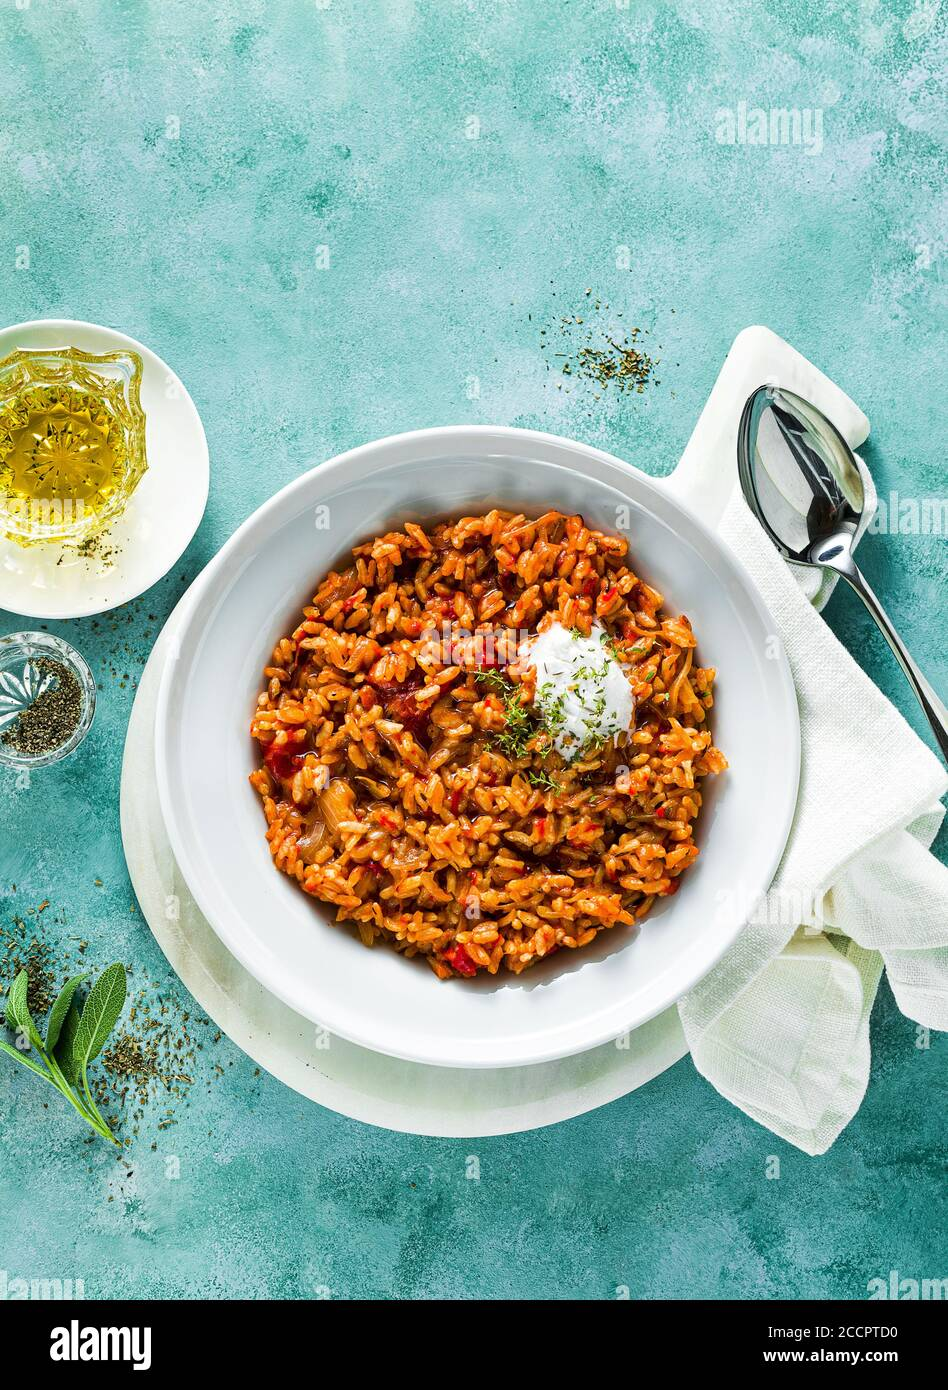 risotto with caramelized onions, tomatoes and coconut cream on a plate on the table. mix of Asian and Mediterranean cuisine Stock Photo